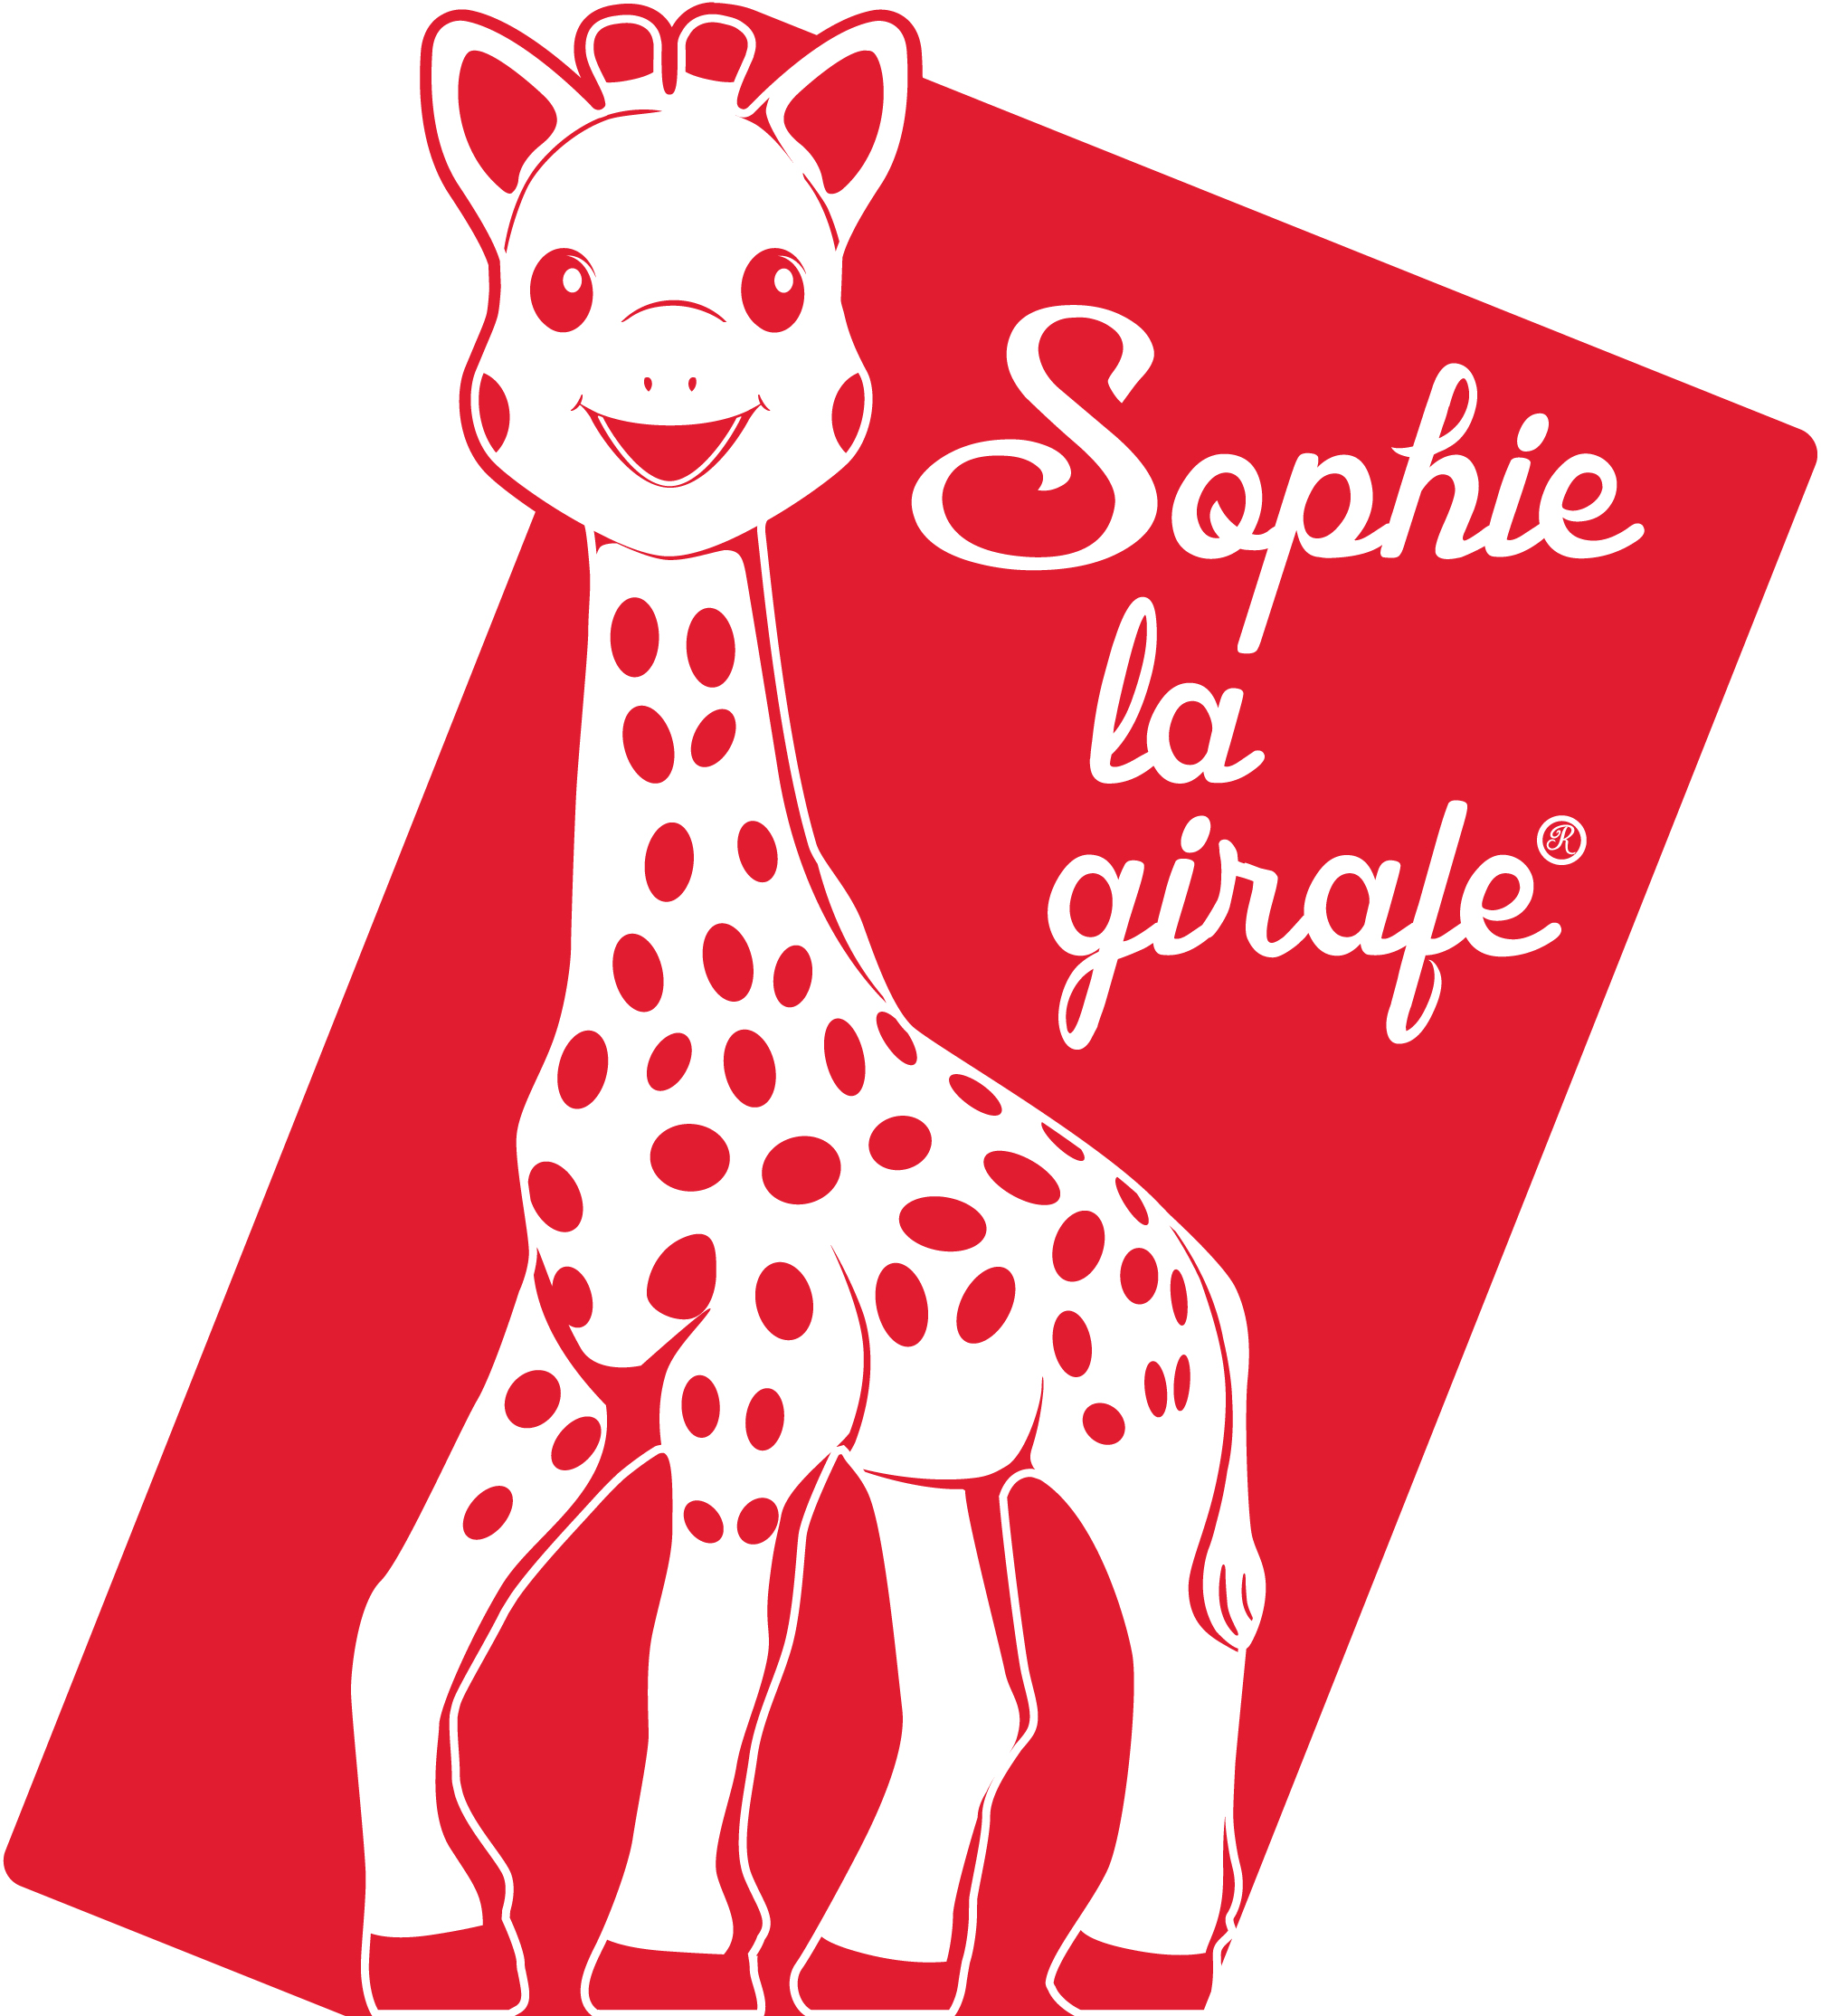 chouette de nouveaux cadeaux sophie la girafe d poser au pied du sapin relations. Black Bedroom Furniture Sets. Home Design Ideas